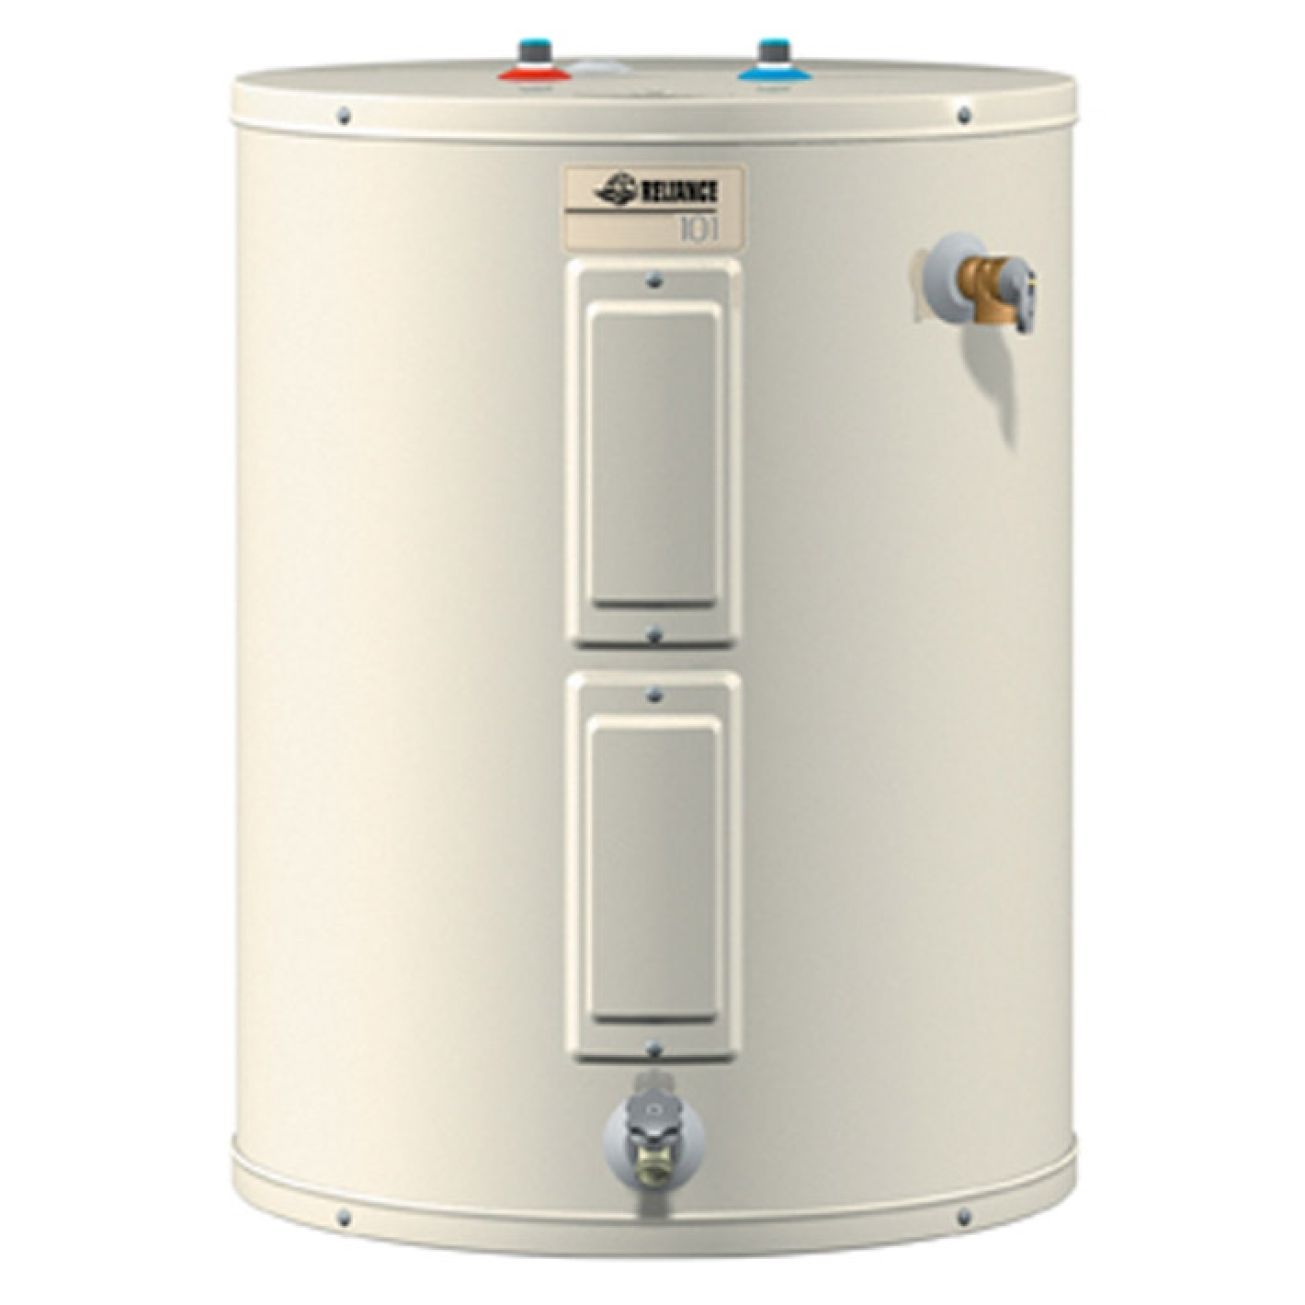 how to relight a pilot light on a water heater